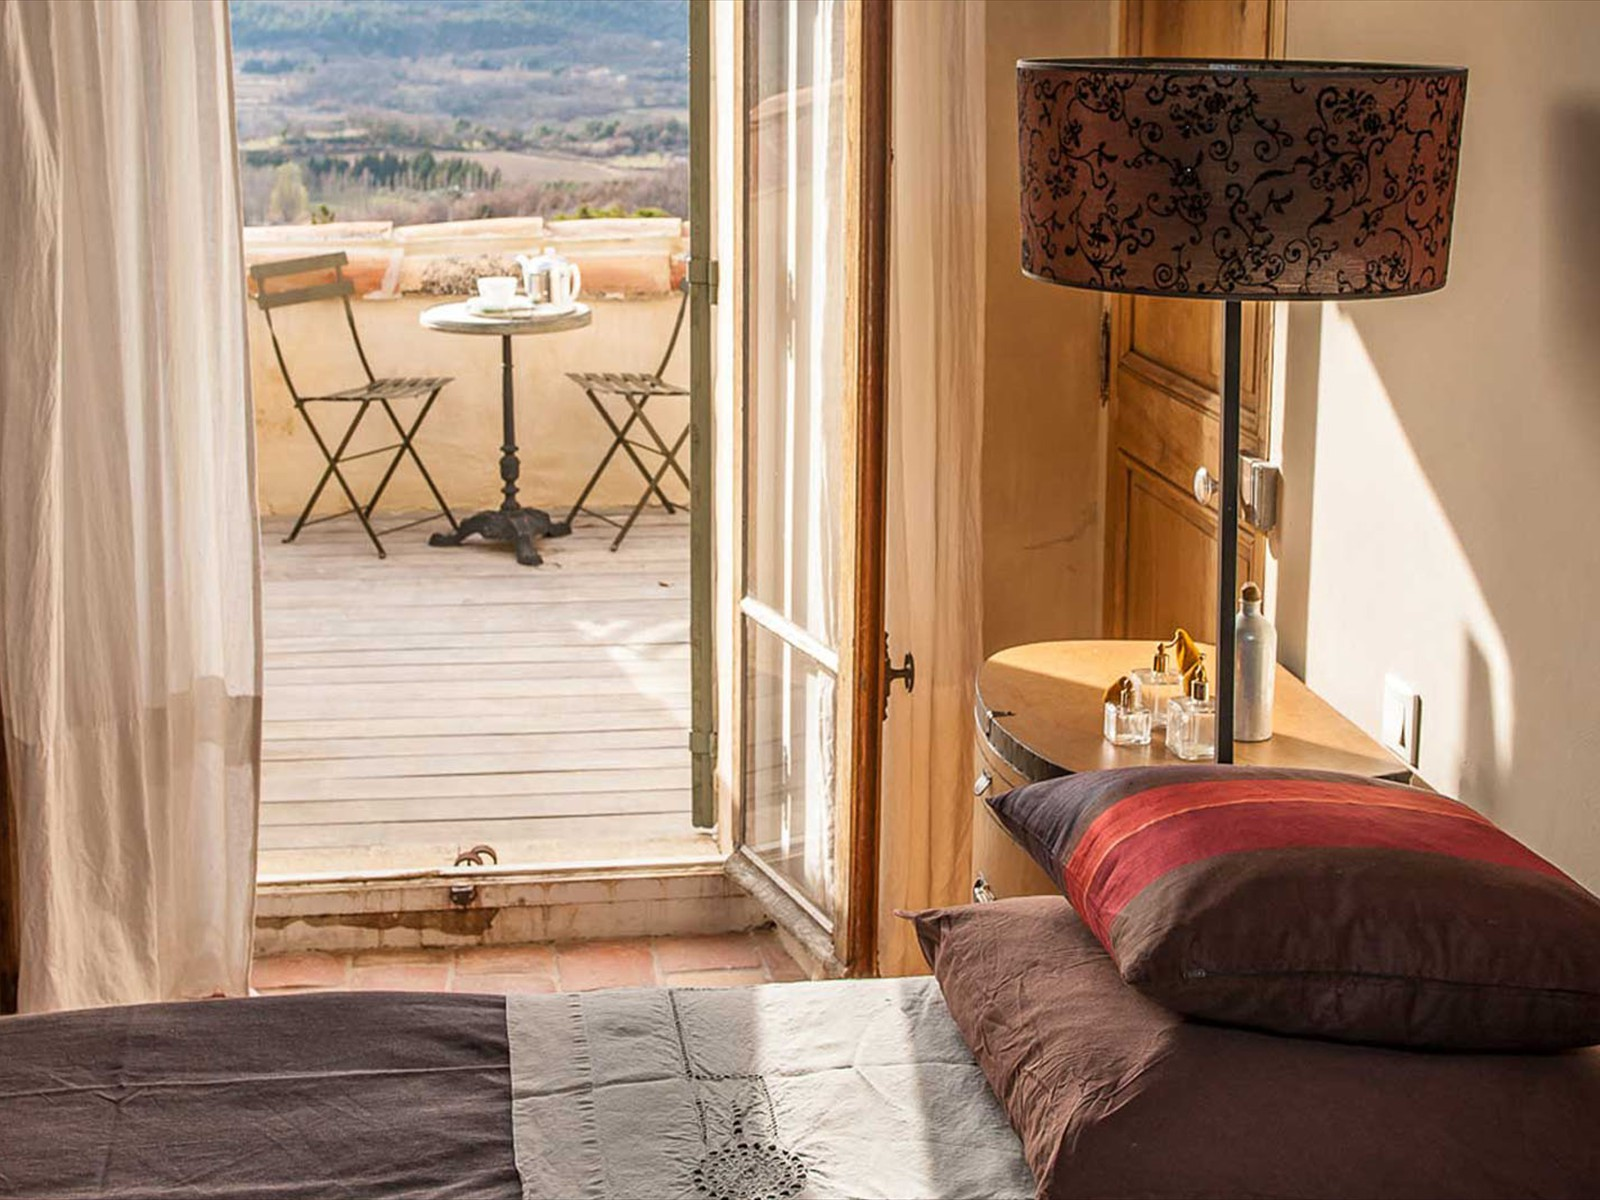 exclusive_rentals_provence_vacation_luxury_homes_holiday_rentals_mont_ventoux_luberon_10